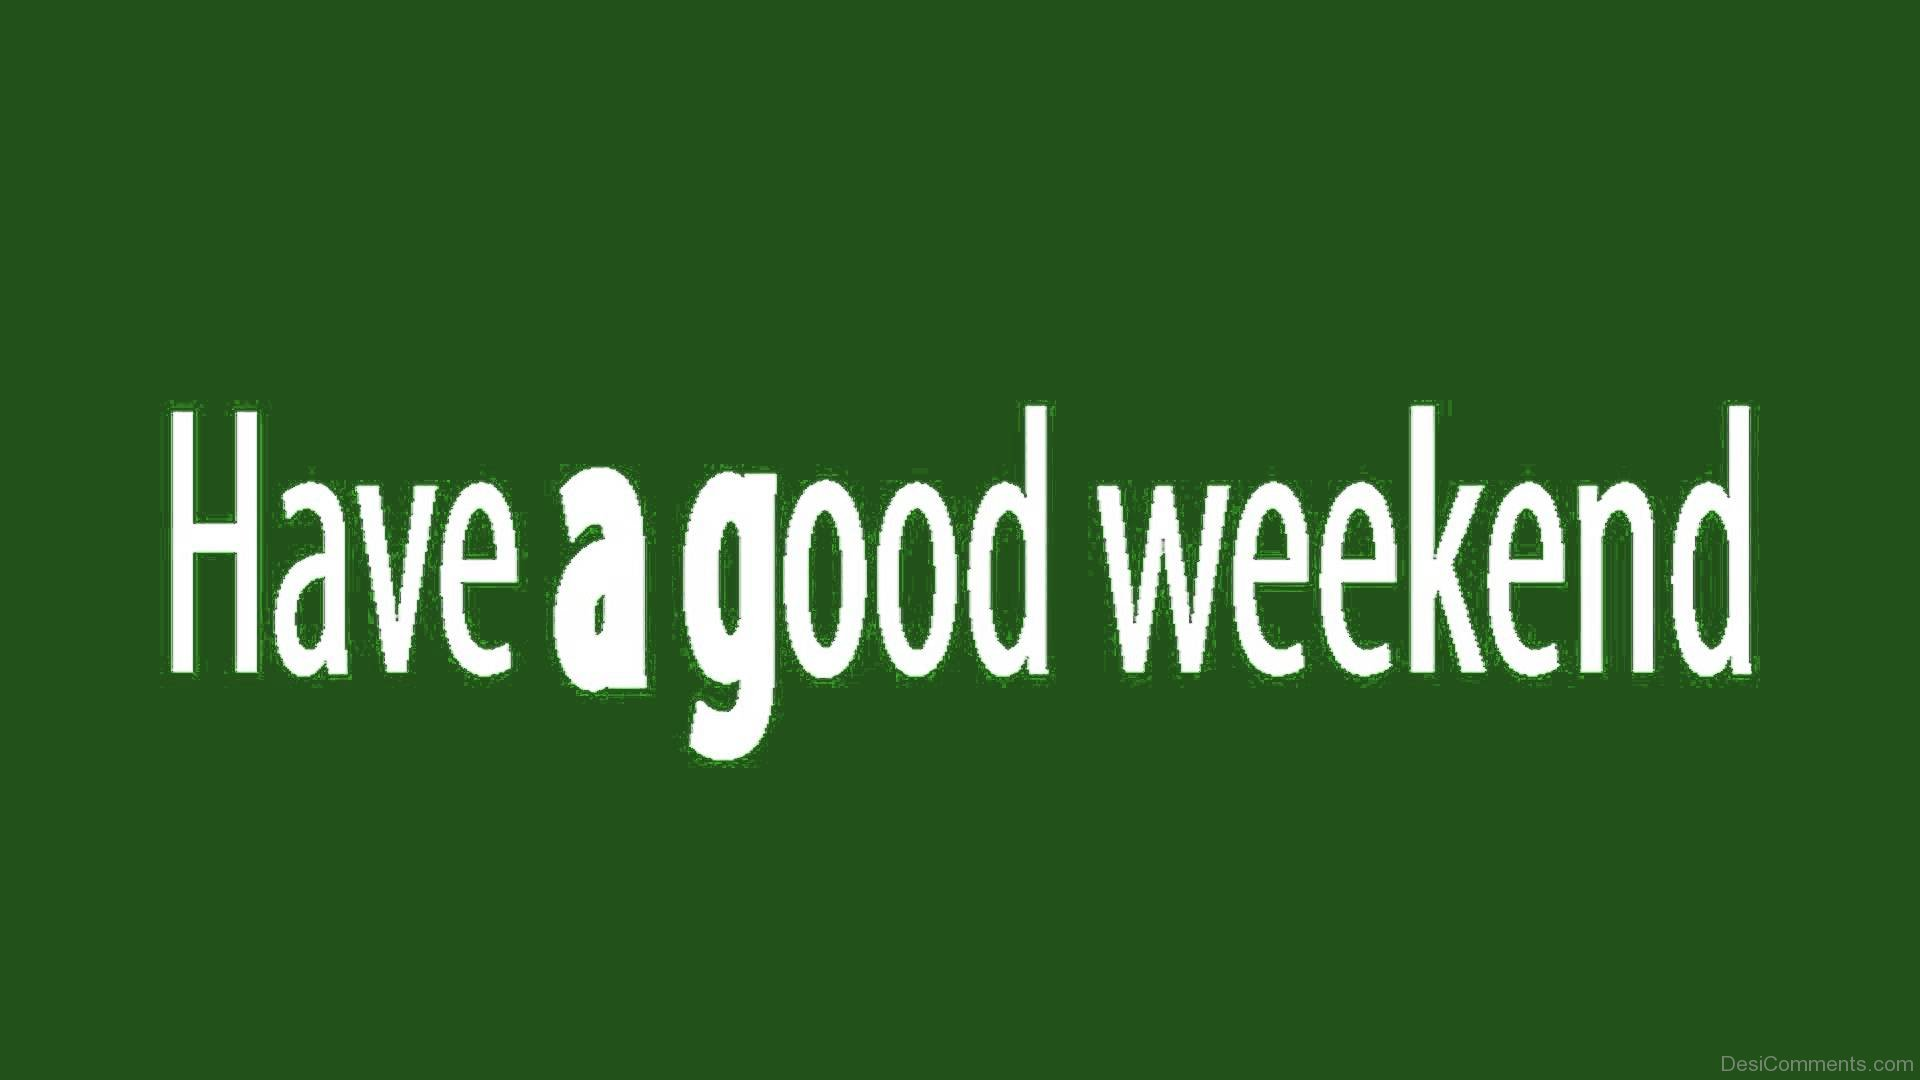 Weekend Pictures, Images, Graphics for Facebook, Whatsapp  Weekend Picture...